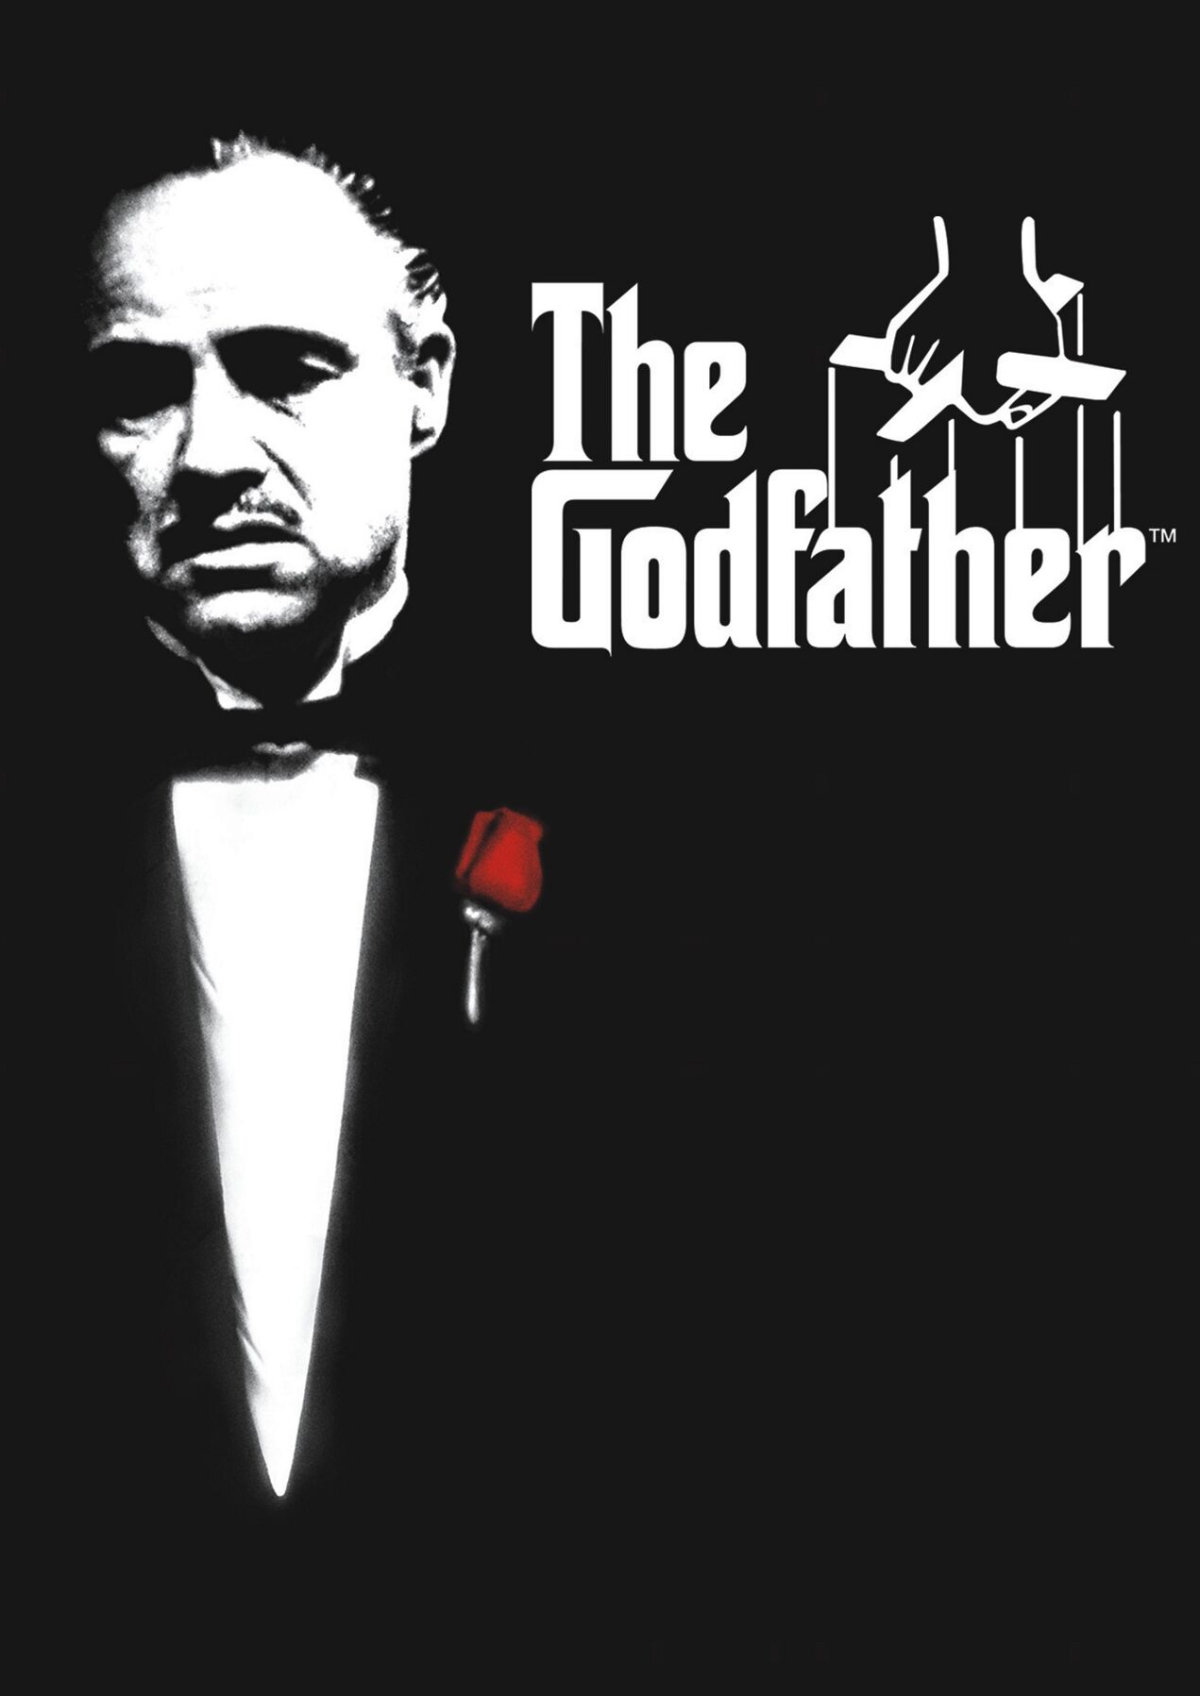 'The Godfather' movie poster